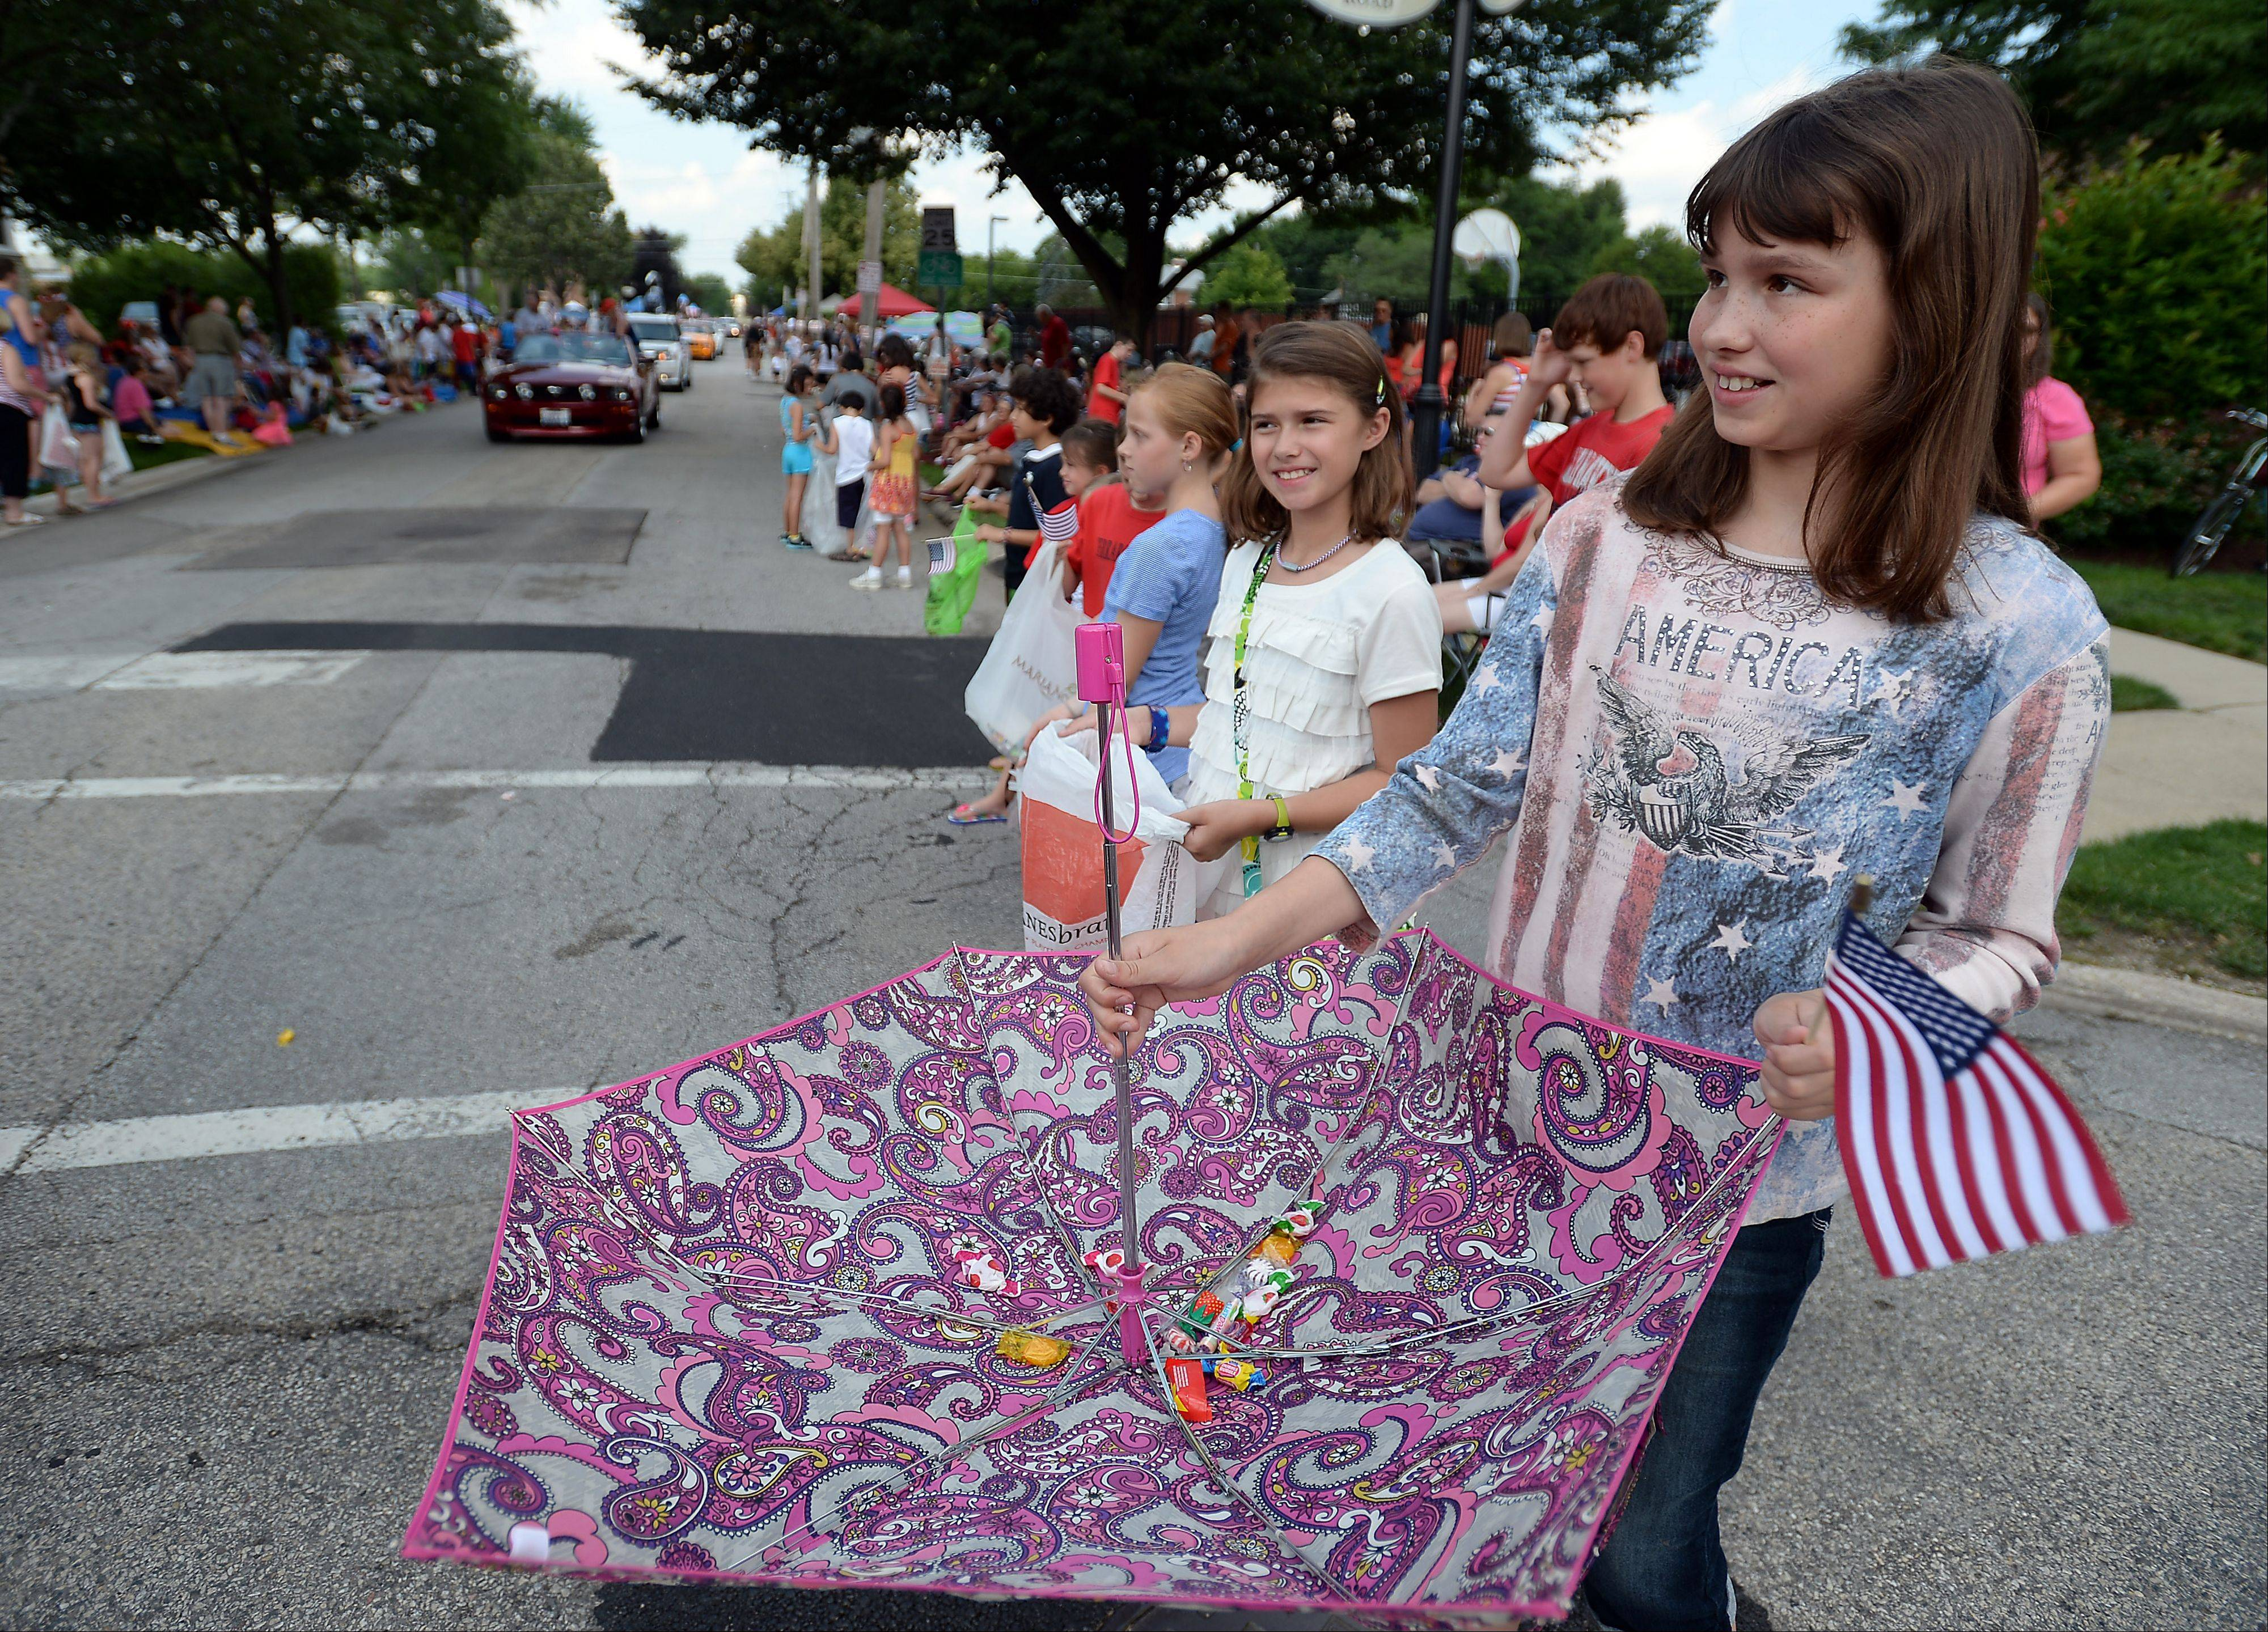 Madisen Blakeslee, 12, makes clever use of an umbrella to catch candy during the Palatine Fourth of July parade on Saturday.